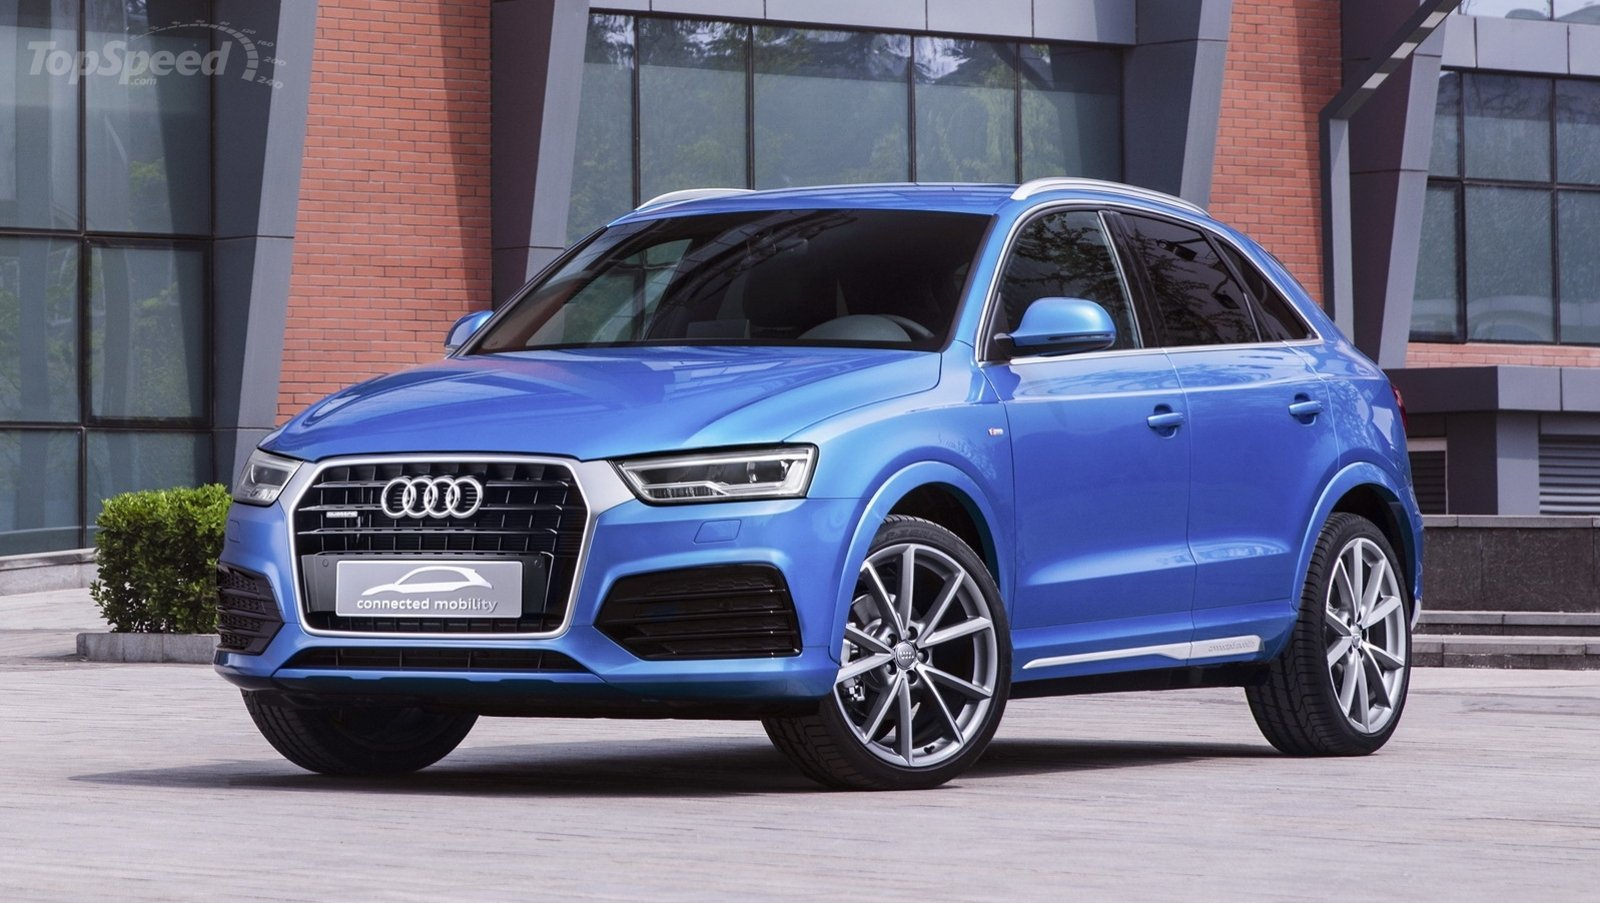 2016 audi q3 connected mobility concept review top speed. Black Bedroom Furniture Sets. Home Design Ideas